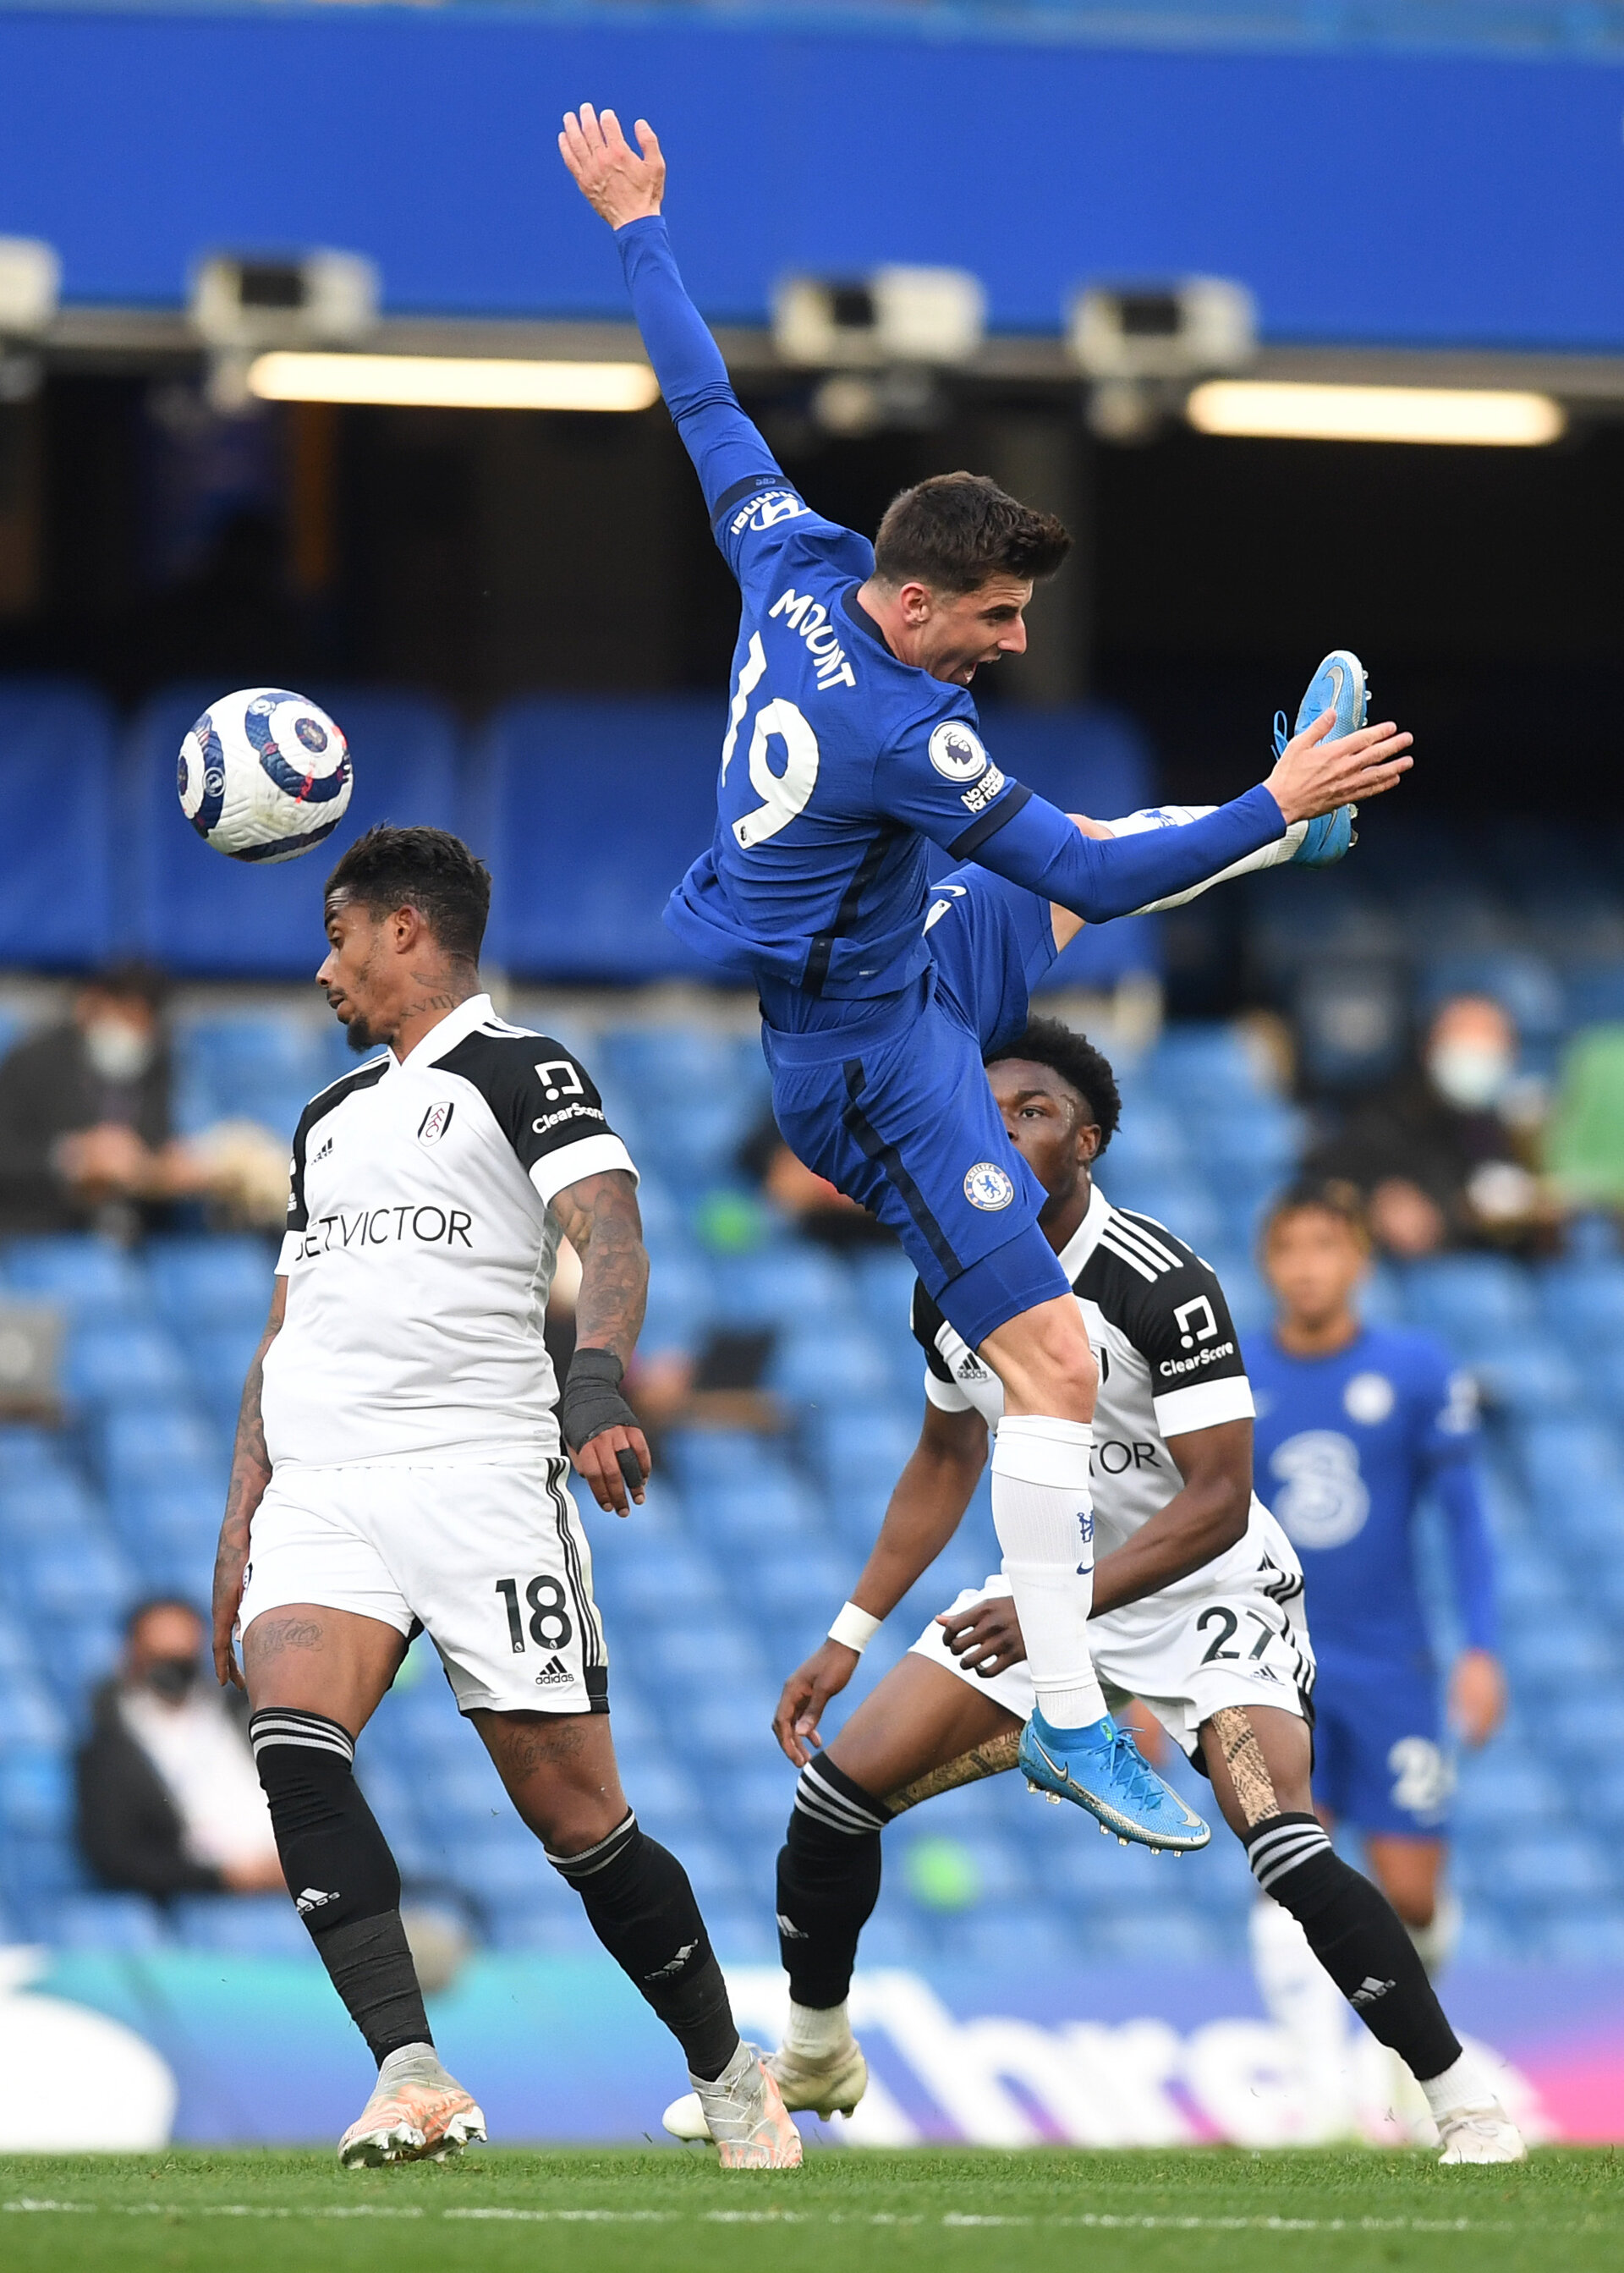 LONDON, ENGLAND - MAY 01: Mason Mount of Chelsea battles for possession with Mario Lemina (L) and Josh Maja (R) of Fulham and lands awkwardly requiring medical treatment during the Premier League match between Chelsea and Fulham at Stamford Bridge on May 01, 2021 in London, England. Sporting stadiums around the UK remain under strict restrictions due to the Coronavirus Pandemic as Government social distancing laws prohibit fans inside venues resulting in games being played behind closed doors. (Photo by Neil Hall - Pool/Getty Images)